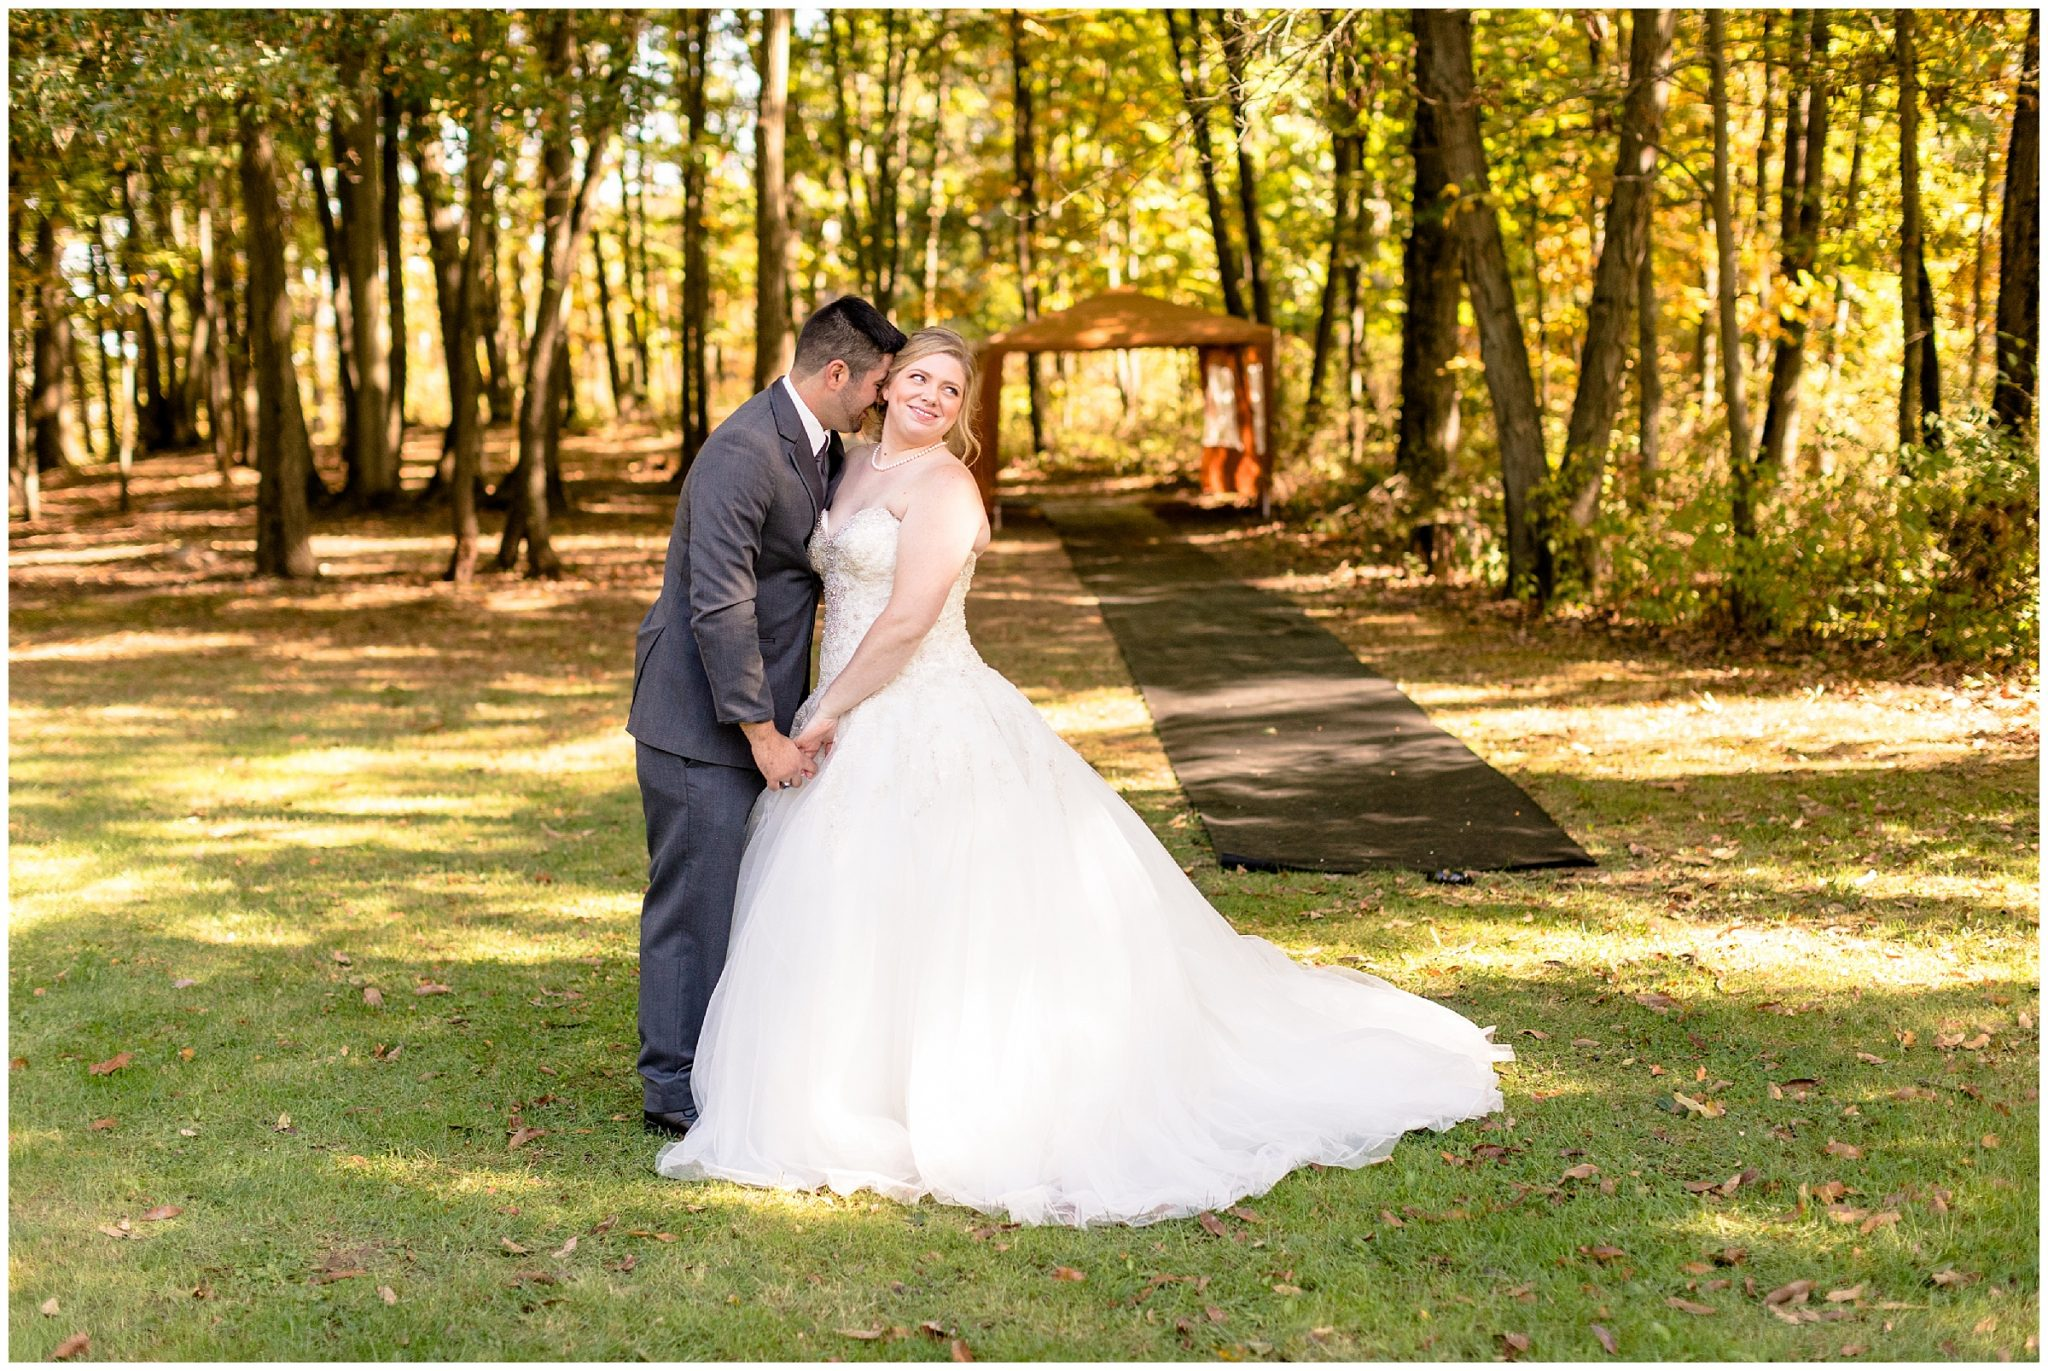 A Handmade Wedding in the Woods, Crown Point Indiana_0298